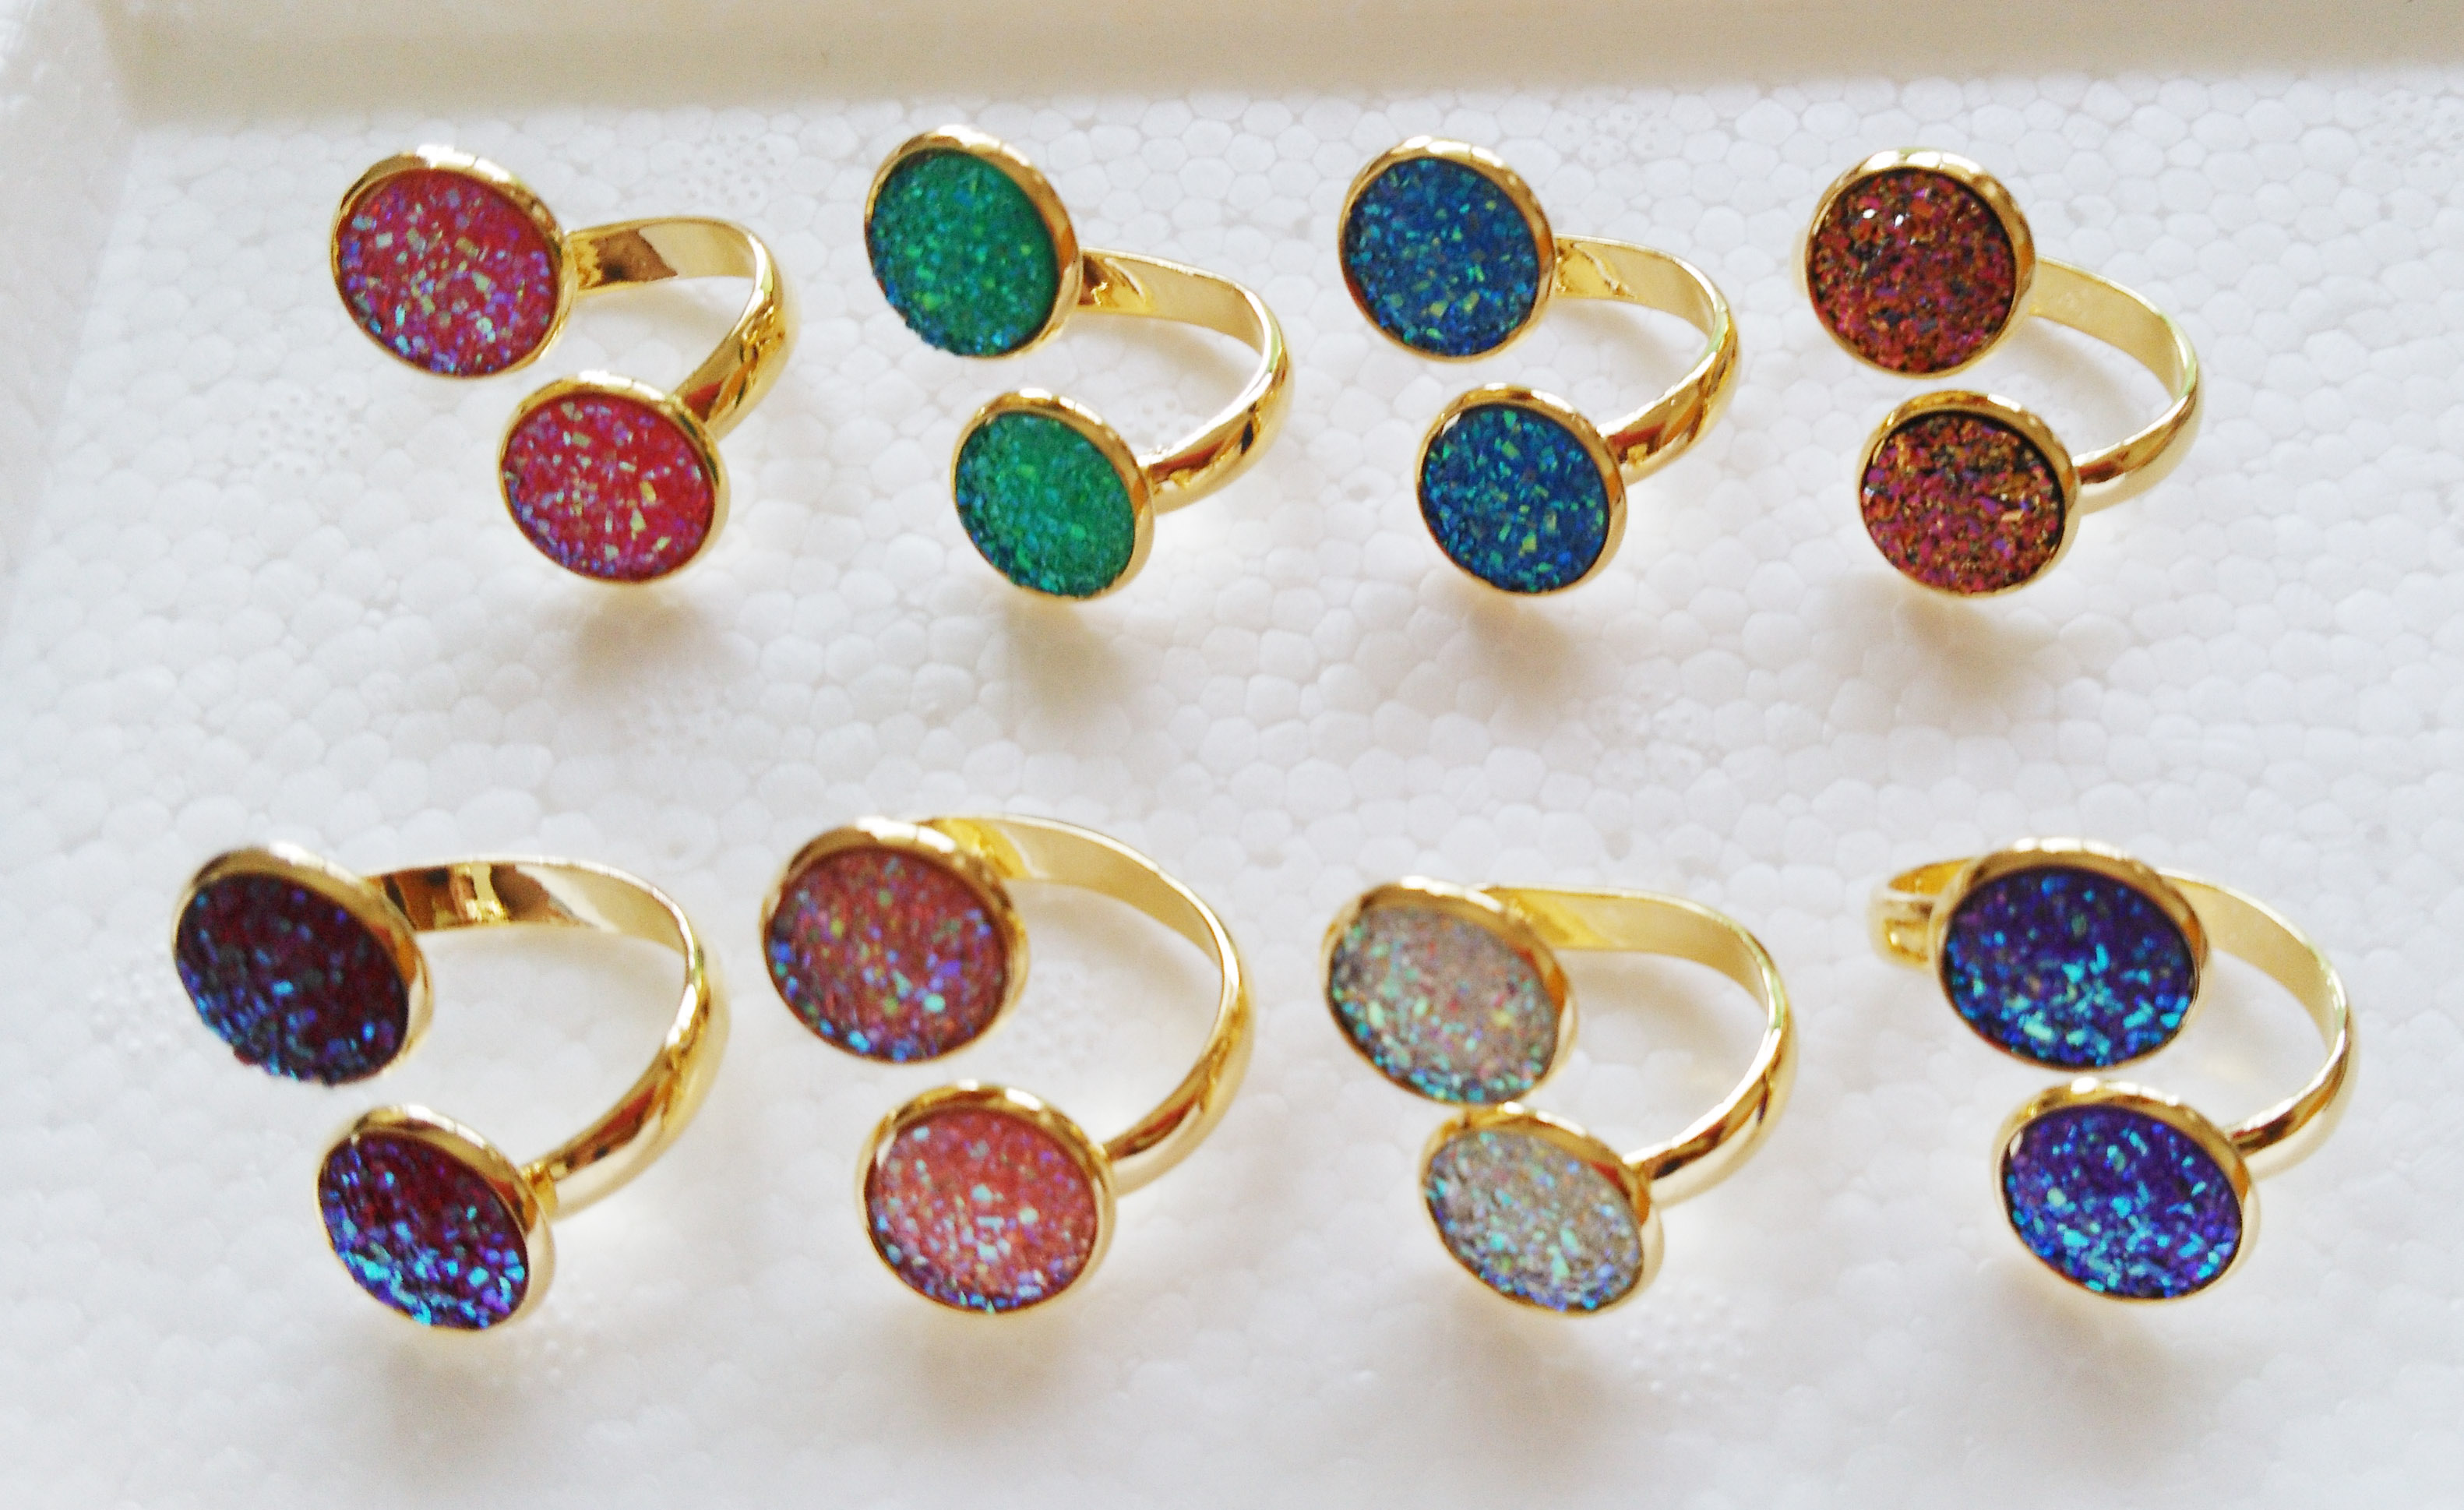 Druzy Quartz Top Quality Gemstone Ring Sparkle Color Stone Ring 925 Sterling Solid Silver Ring-Gift Item Ring-Fancy Rough Ring Druzy Ring